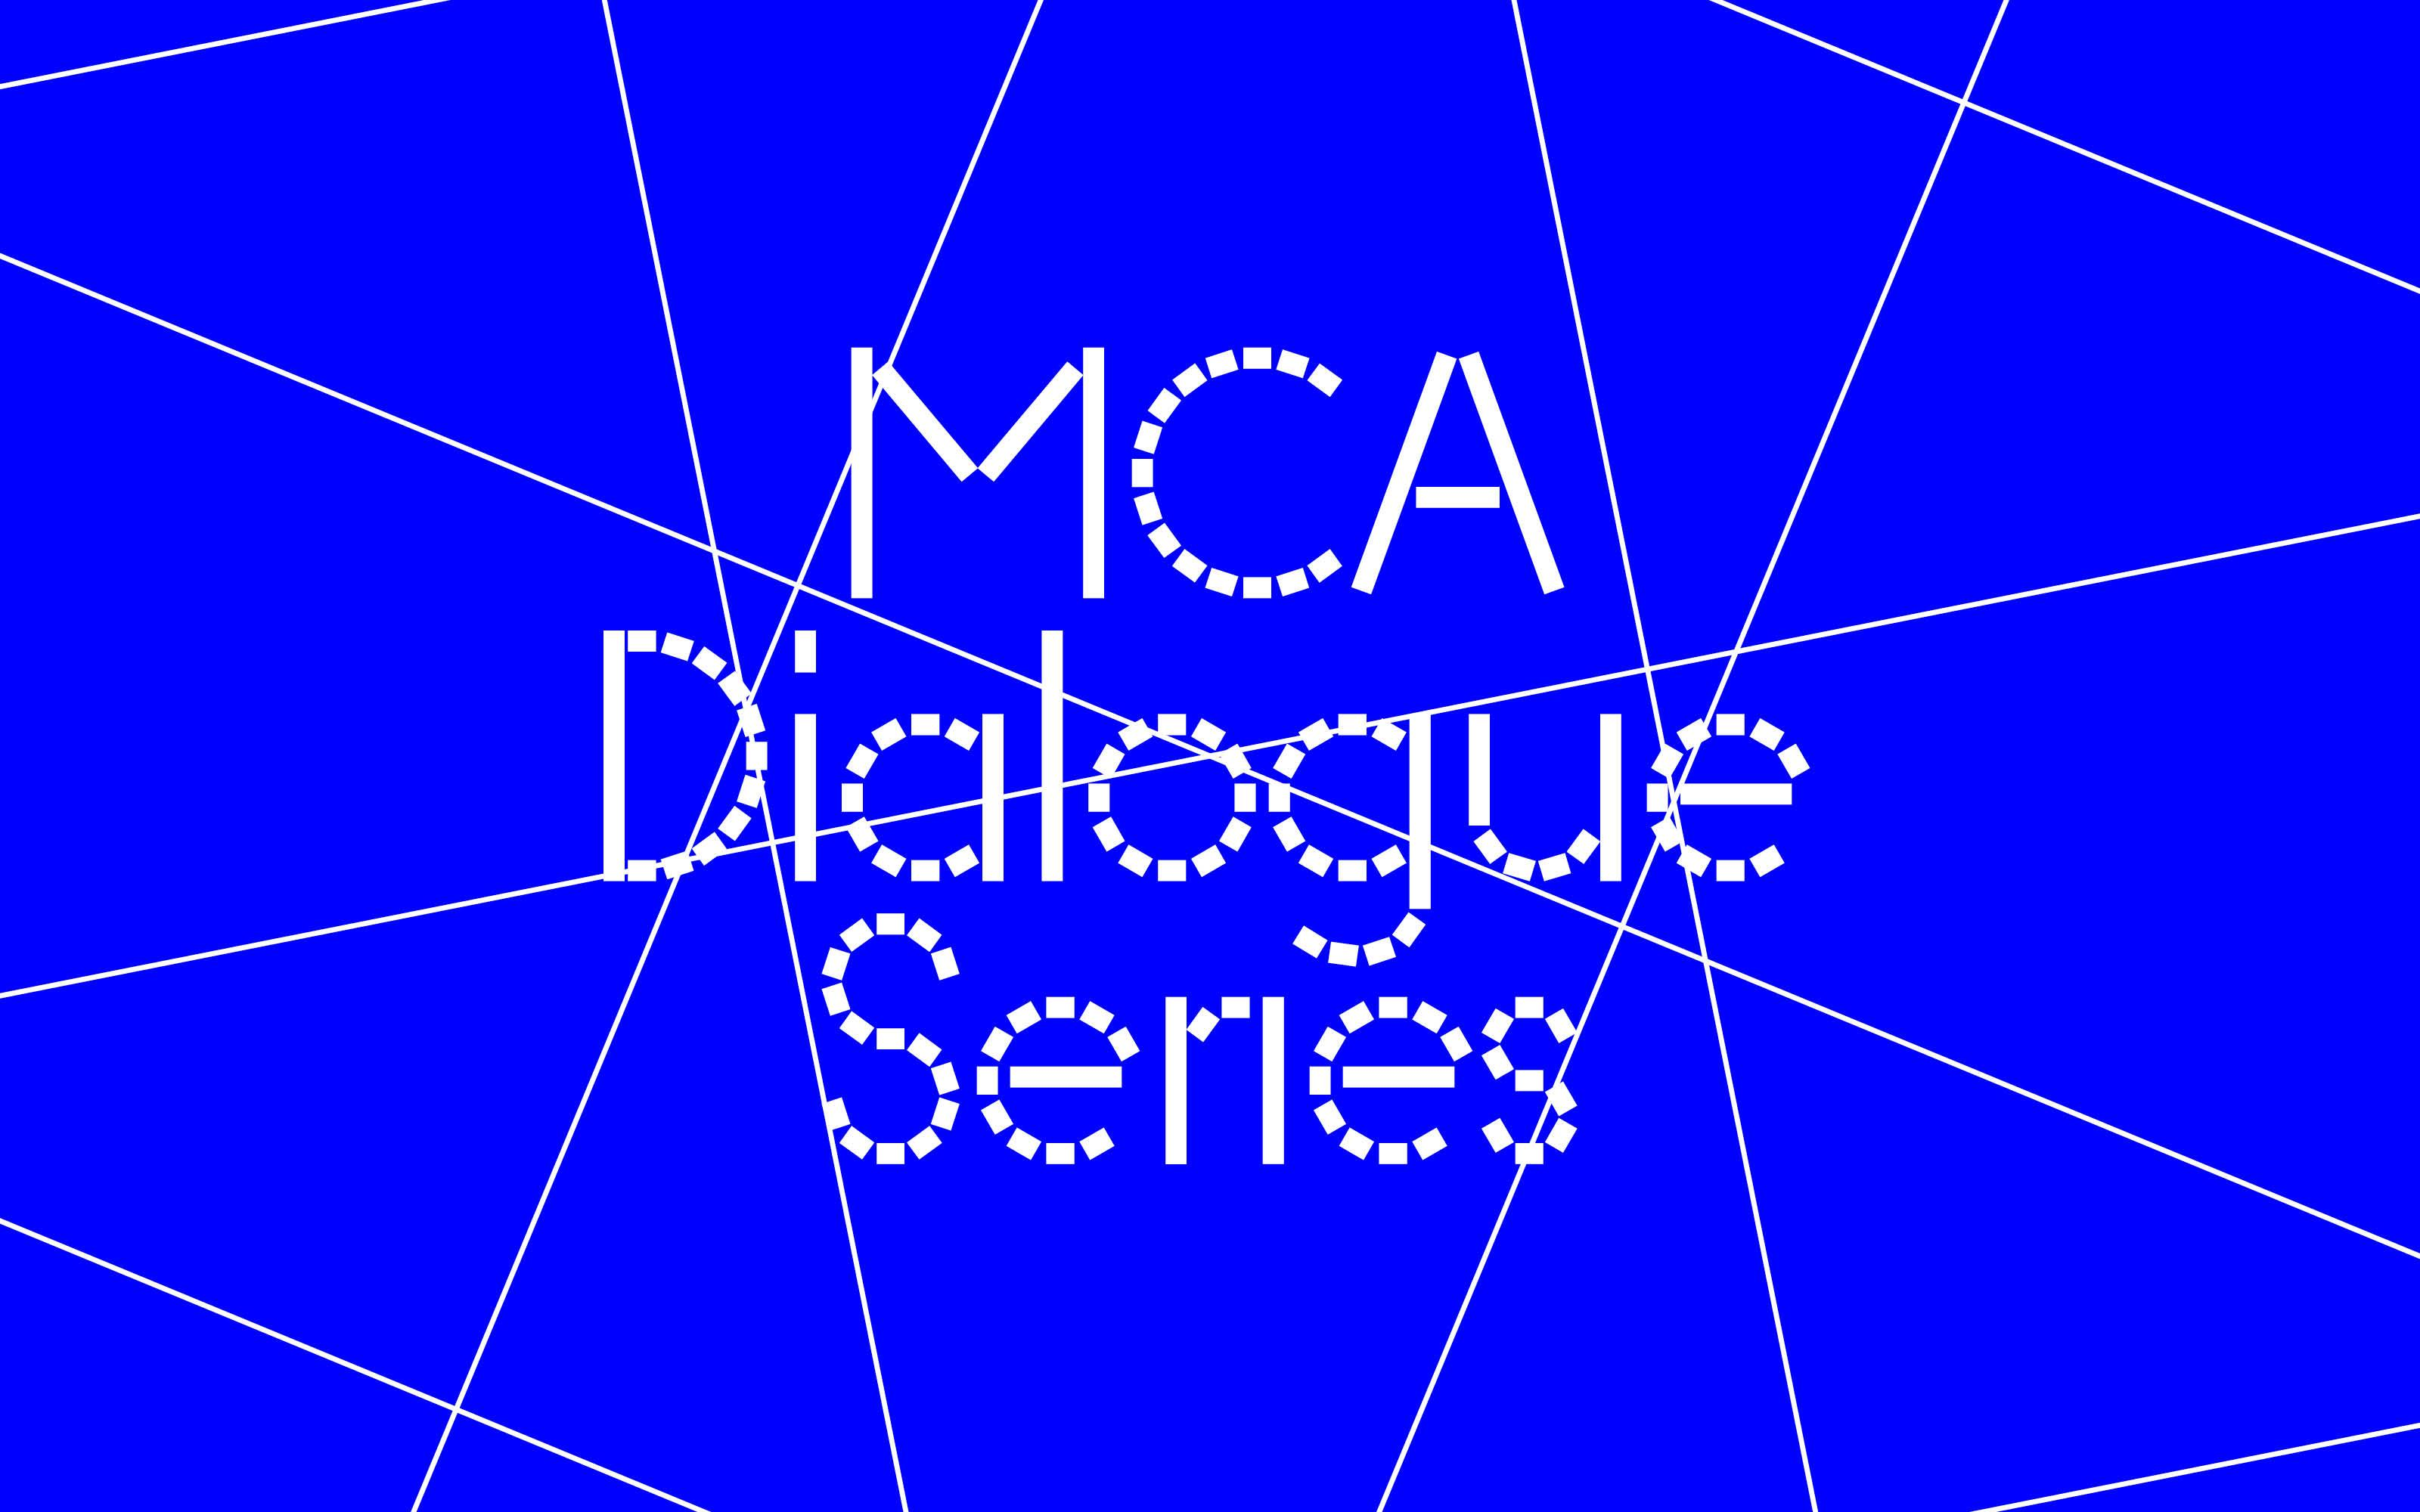 An text graphic with grid overlaid by the words 'MCA Dialogue Series'